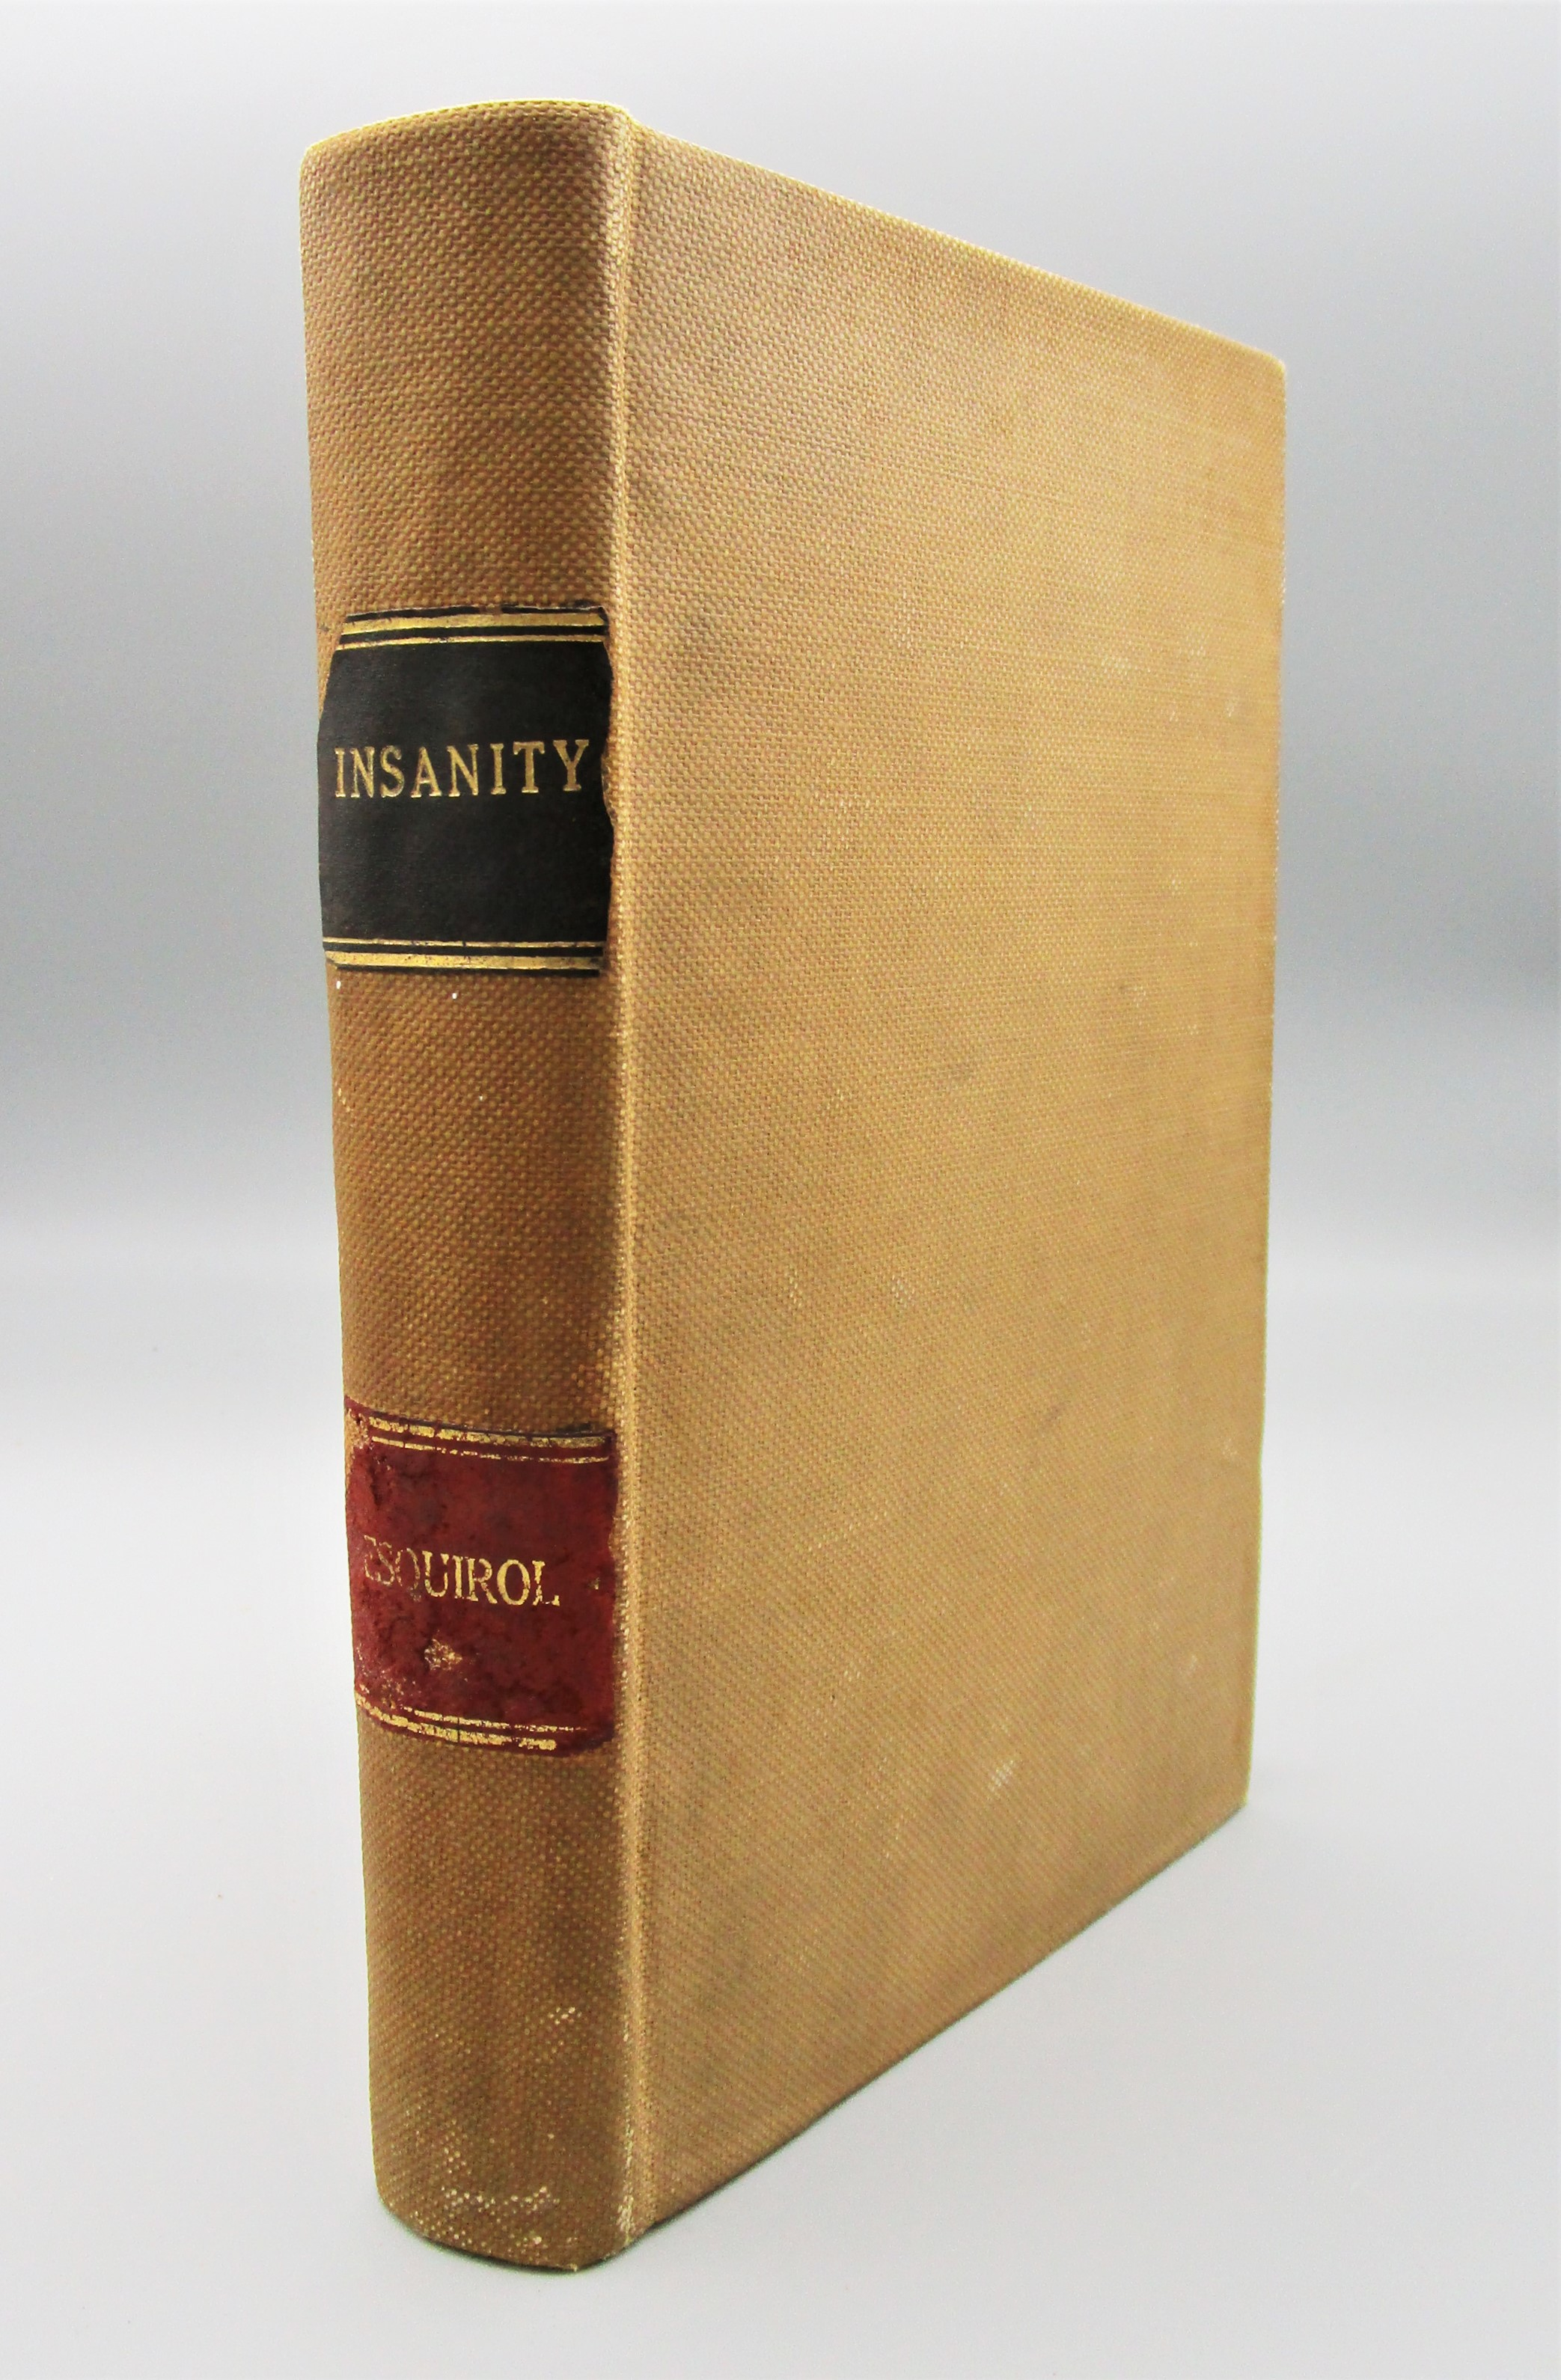 MENTAL MALADIES: TREATISE ON INSANITY, by E. Esquirol & E. K. Hunt - 1845 FIRST EDITION